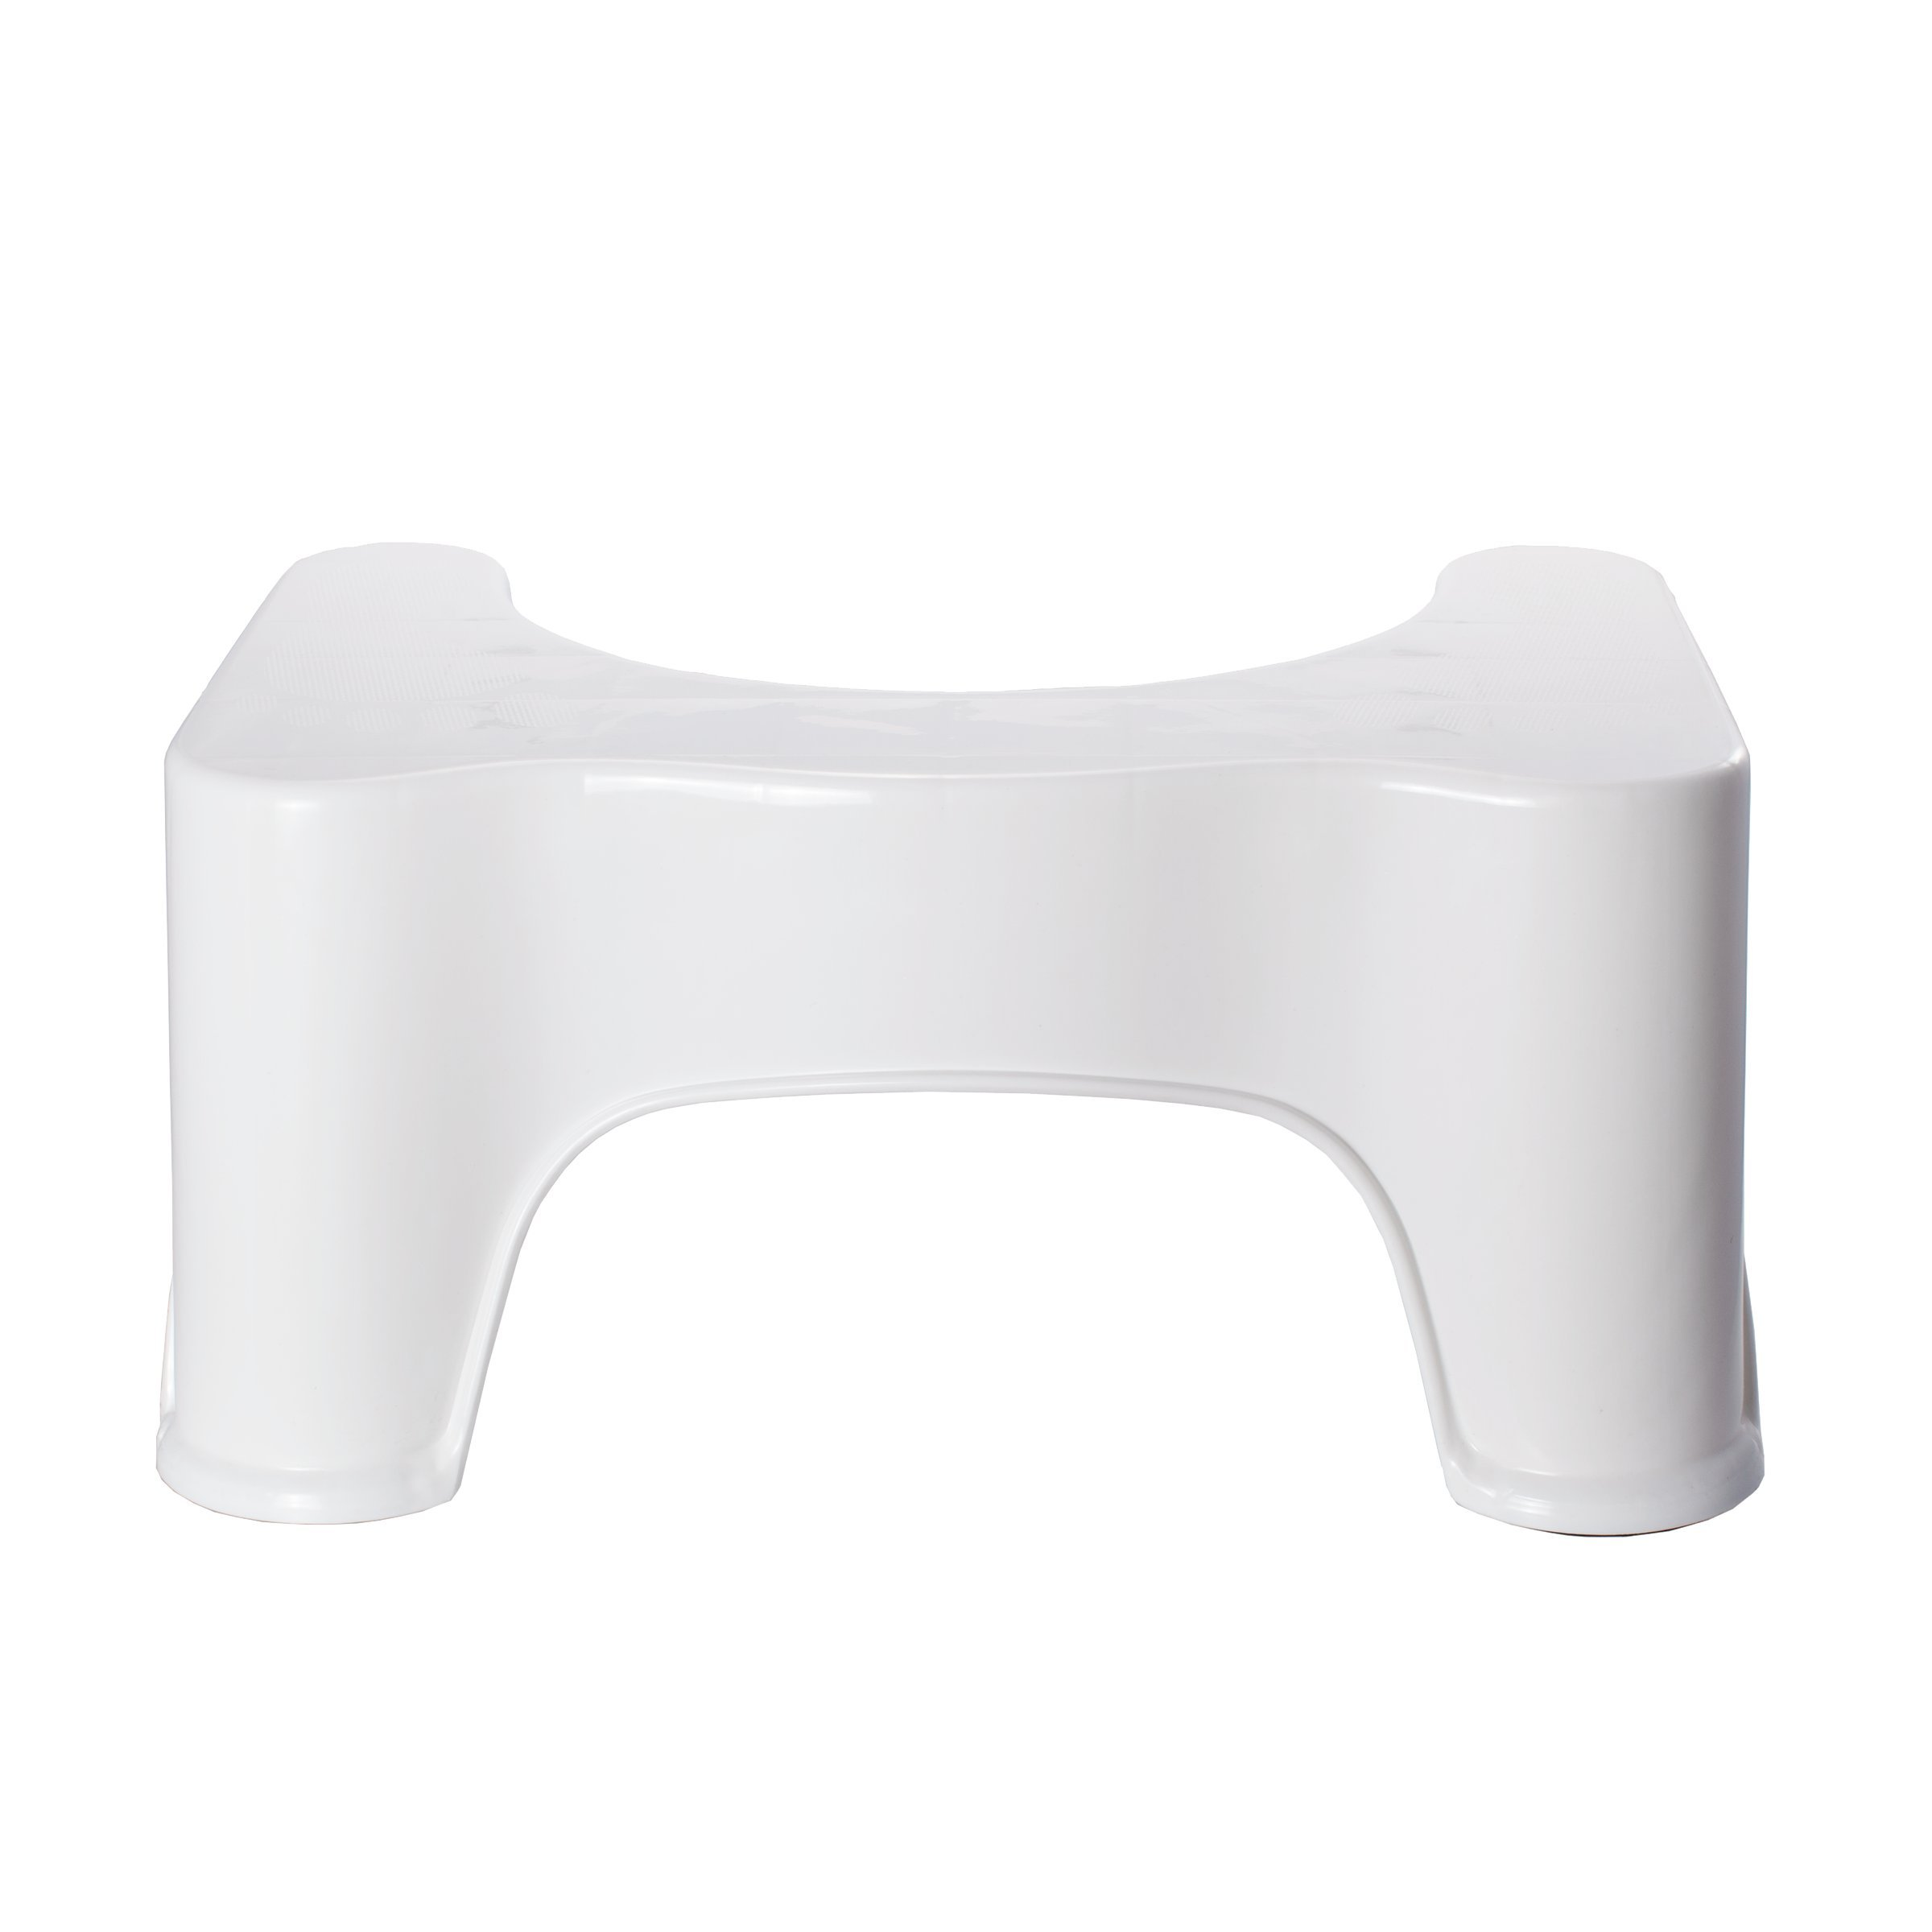 9'' Inch Most Ergonomic Bathroom Space Saver Toilet Stool Natural Aid For Squatty Posture Better Bowel Movements For All Ages